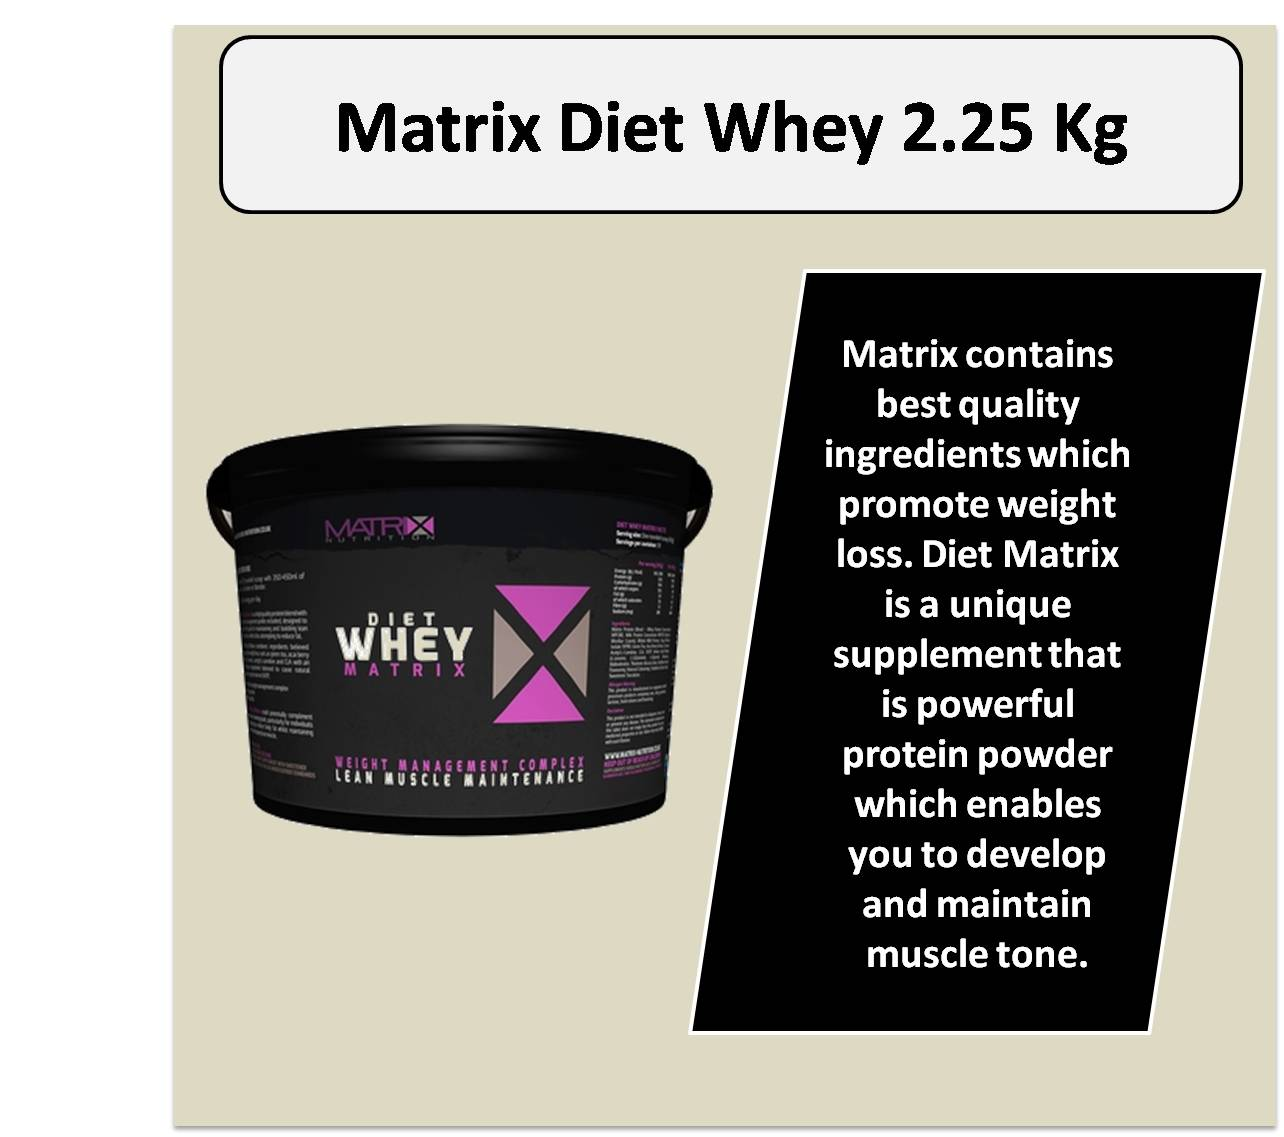 Matrix Diet Whey 2.25 Kg